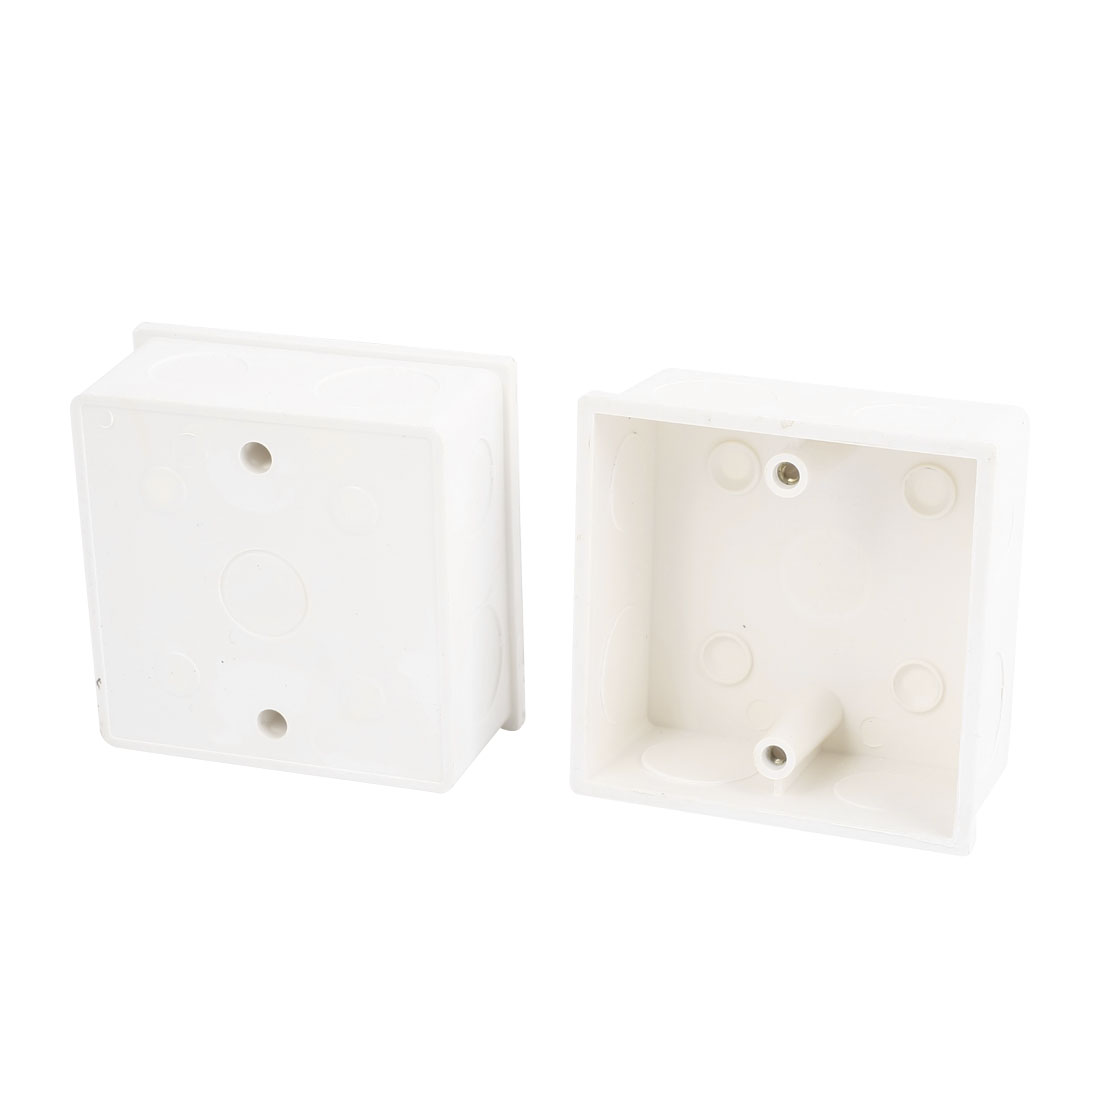 2 Pcs 86x86x43mm White PVC Single Gang Mount Back Box for Wall Socket